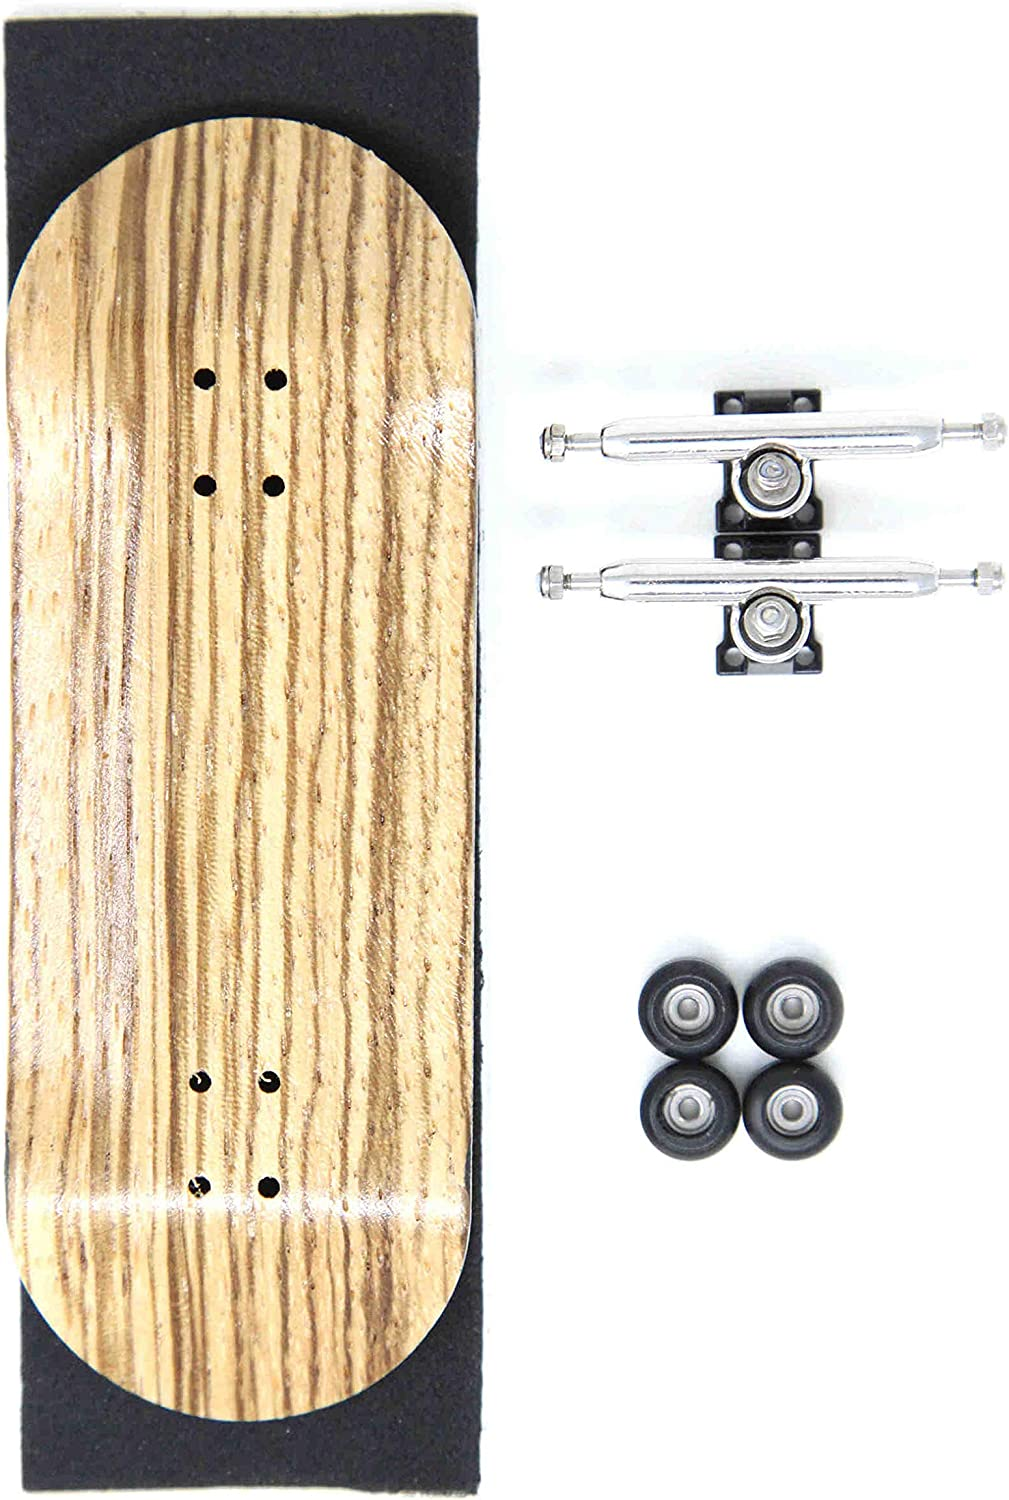 Skull Fingerboards Mona 34mm Pro Complete Professional Wooden Fingerboard Mini Skateboard 5 PLY with CNC Bearing Wheels